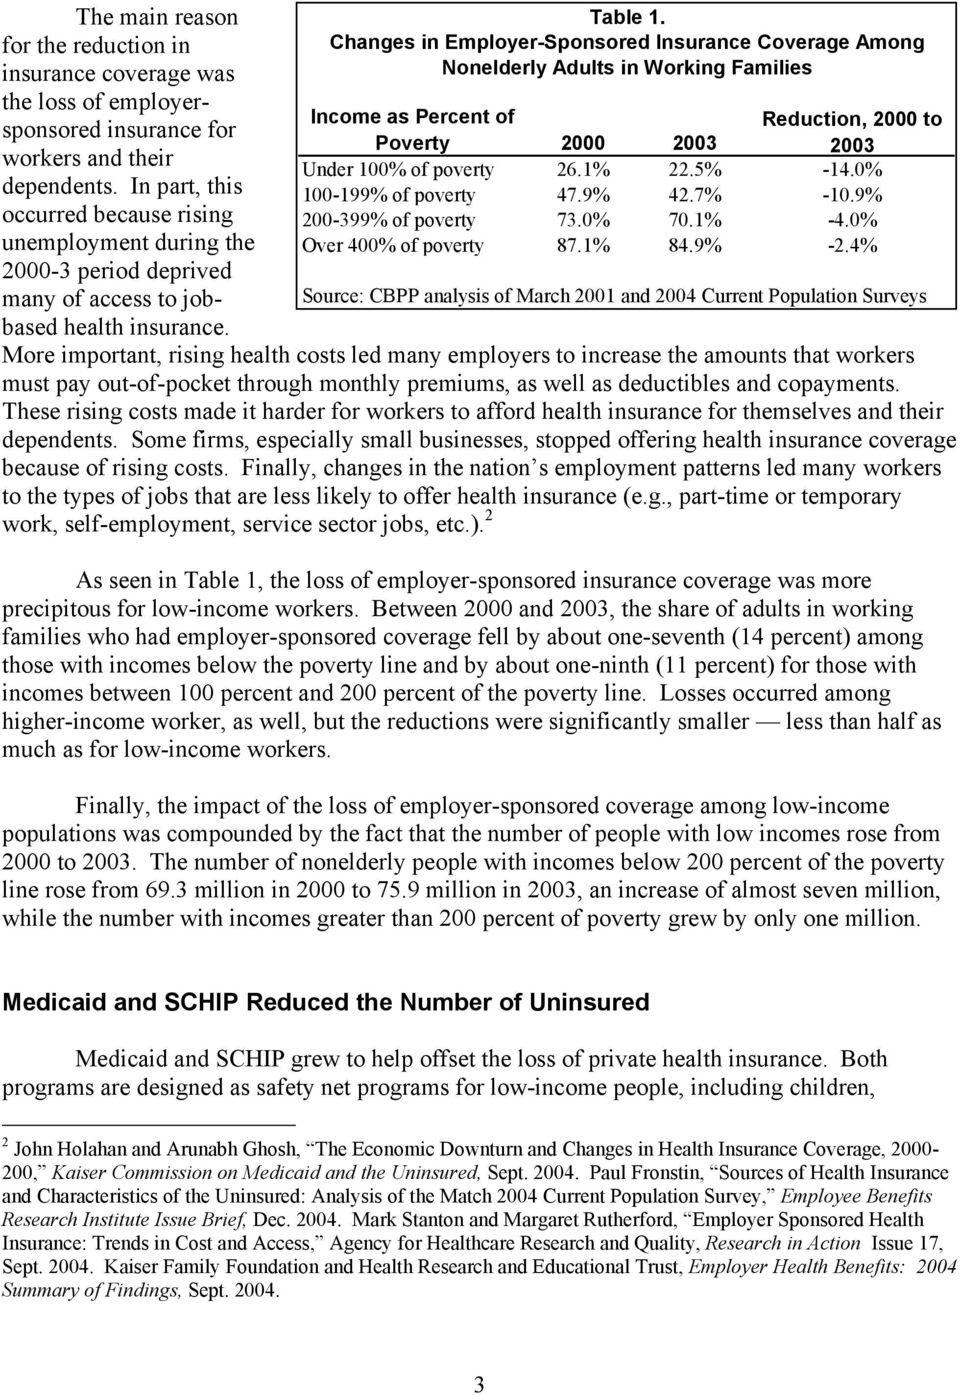 Changes in Employer-Sponsored Insurance Coverage Among Nonelderly Adults in Working Families Income as Percent of Poverty 2000 2003 Reduction, 2000 to 2003 Under 100% of poverty 26.1% 22.5% -14.